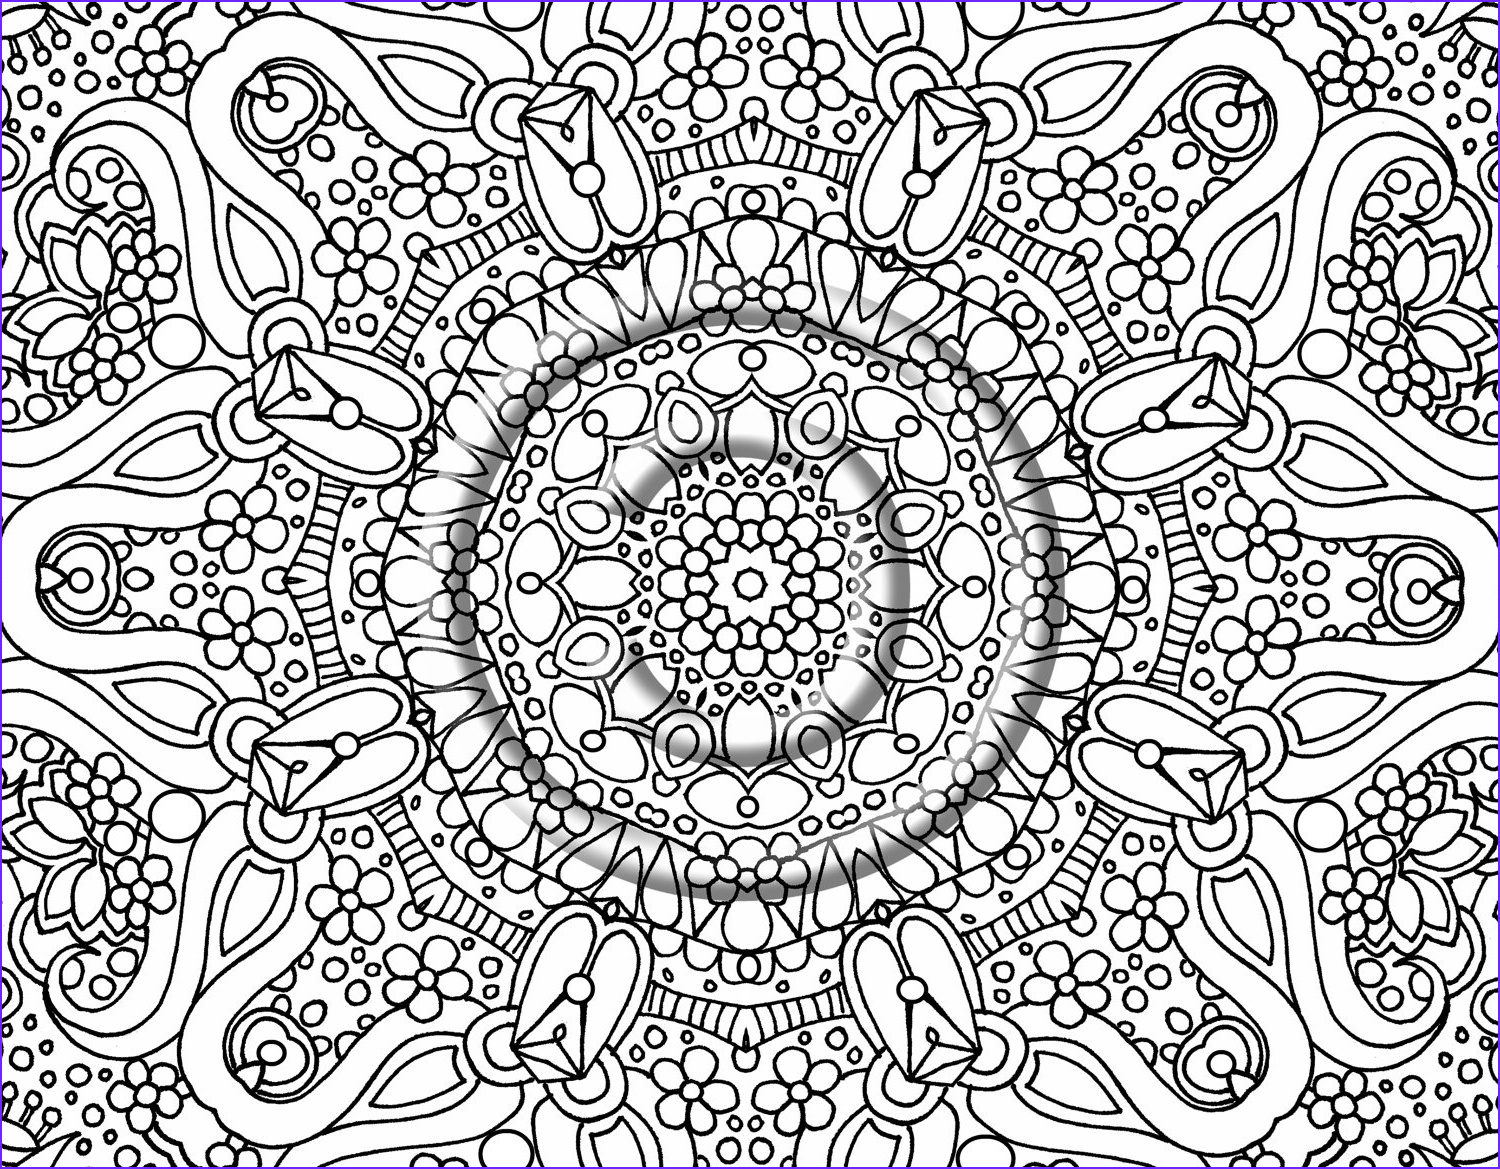 Free Printable Adult Coloring Pages Unique Photos Free Printable Abstract Coloring Pages for Adults